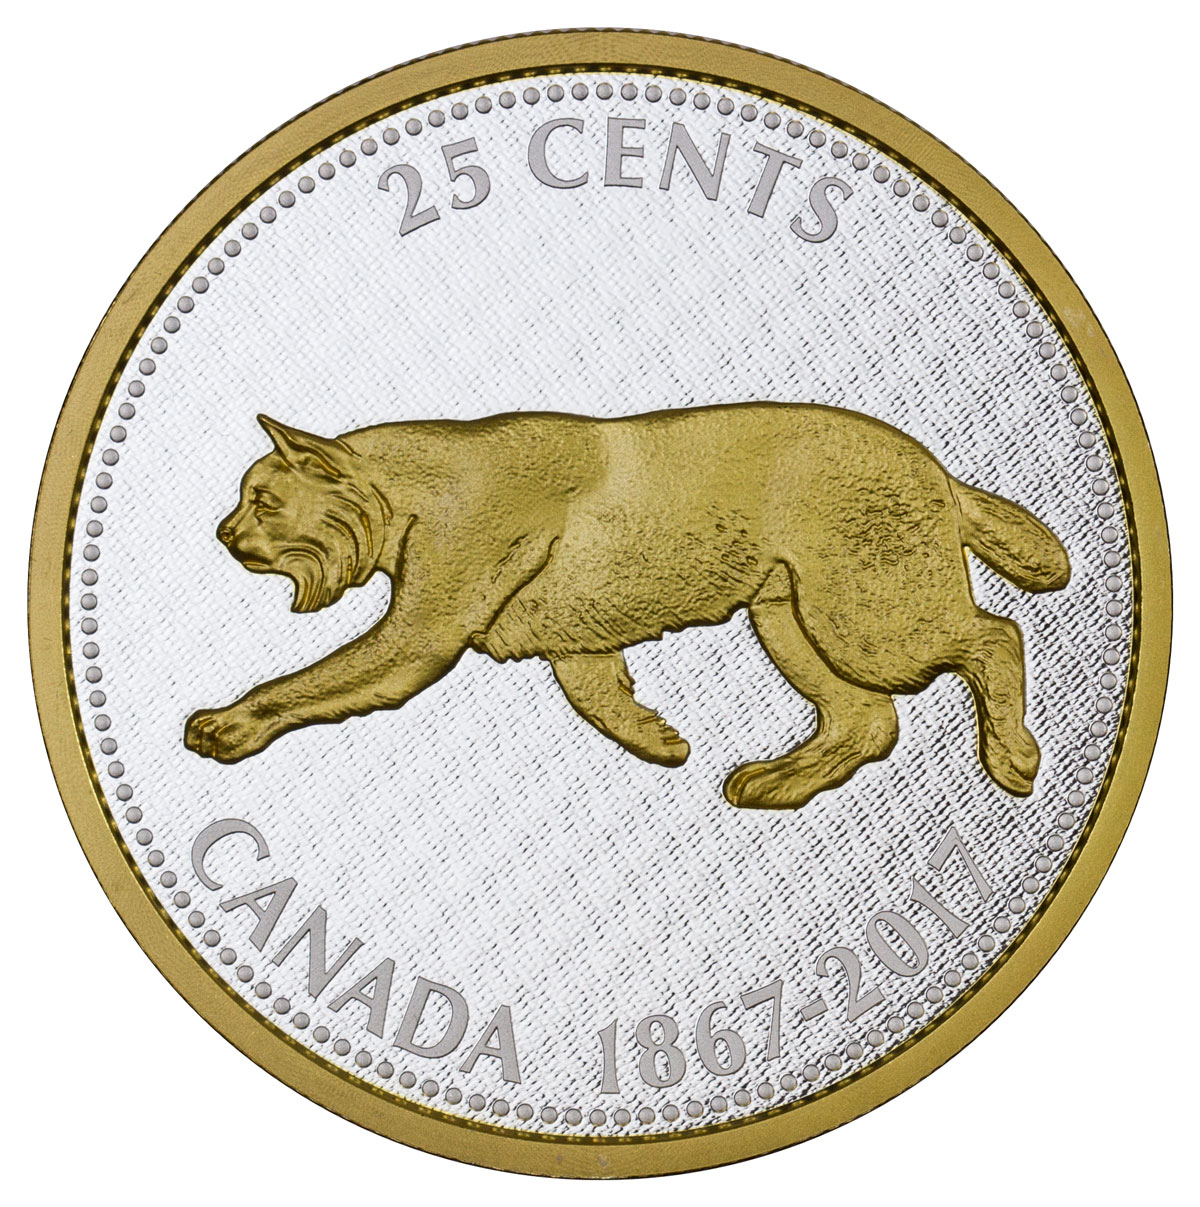 2017 Canada Big Coin Series - Alex Colville Designs - Bobcat 5 oz Silver Gilt Proof 25c Coin GEM Proof (OGP)